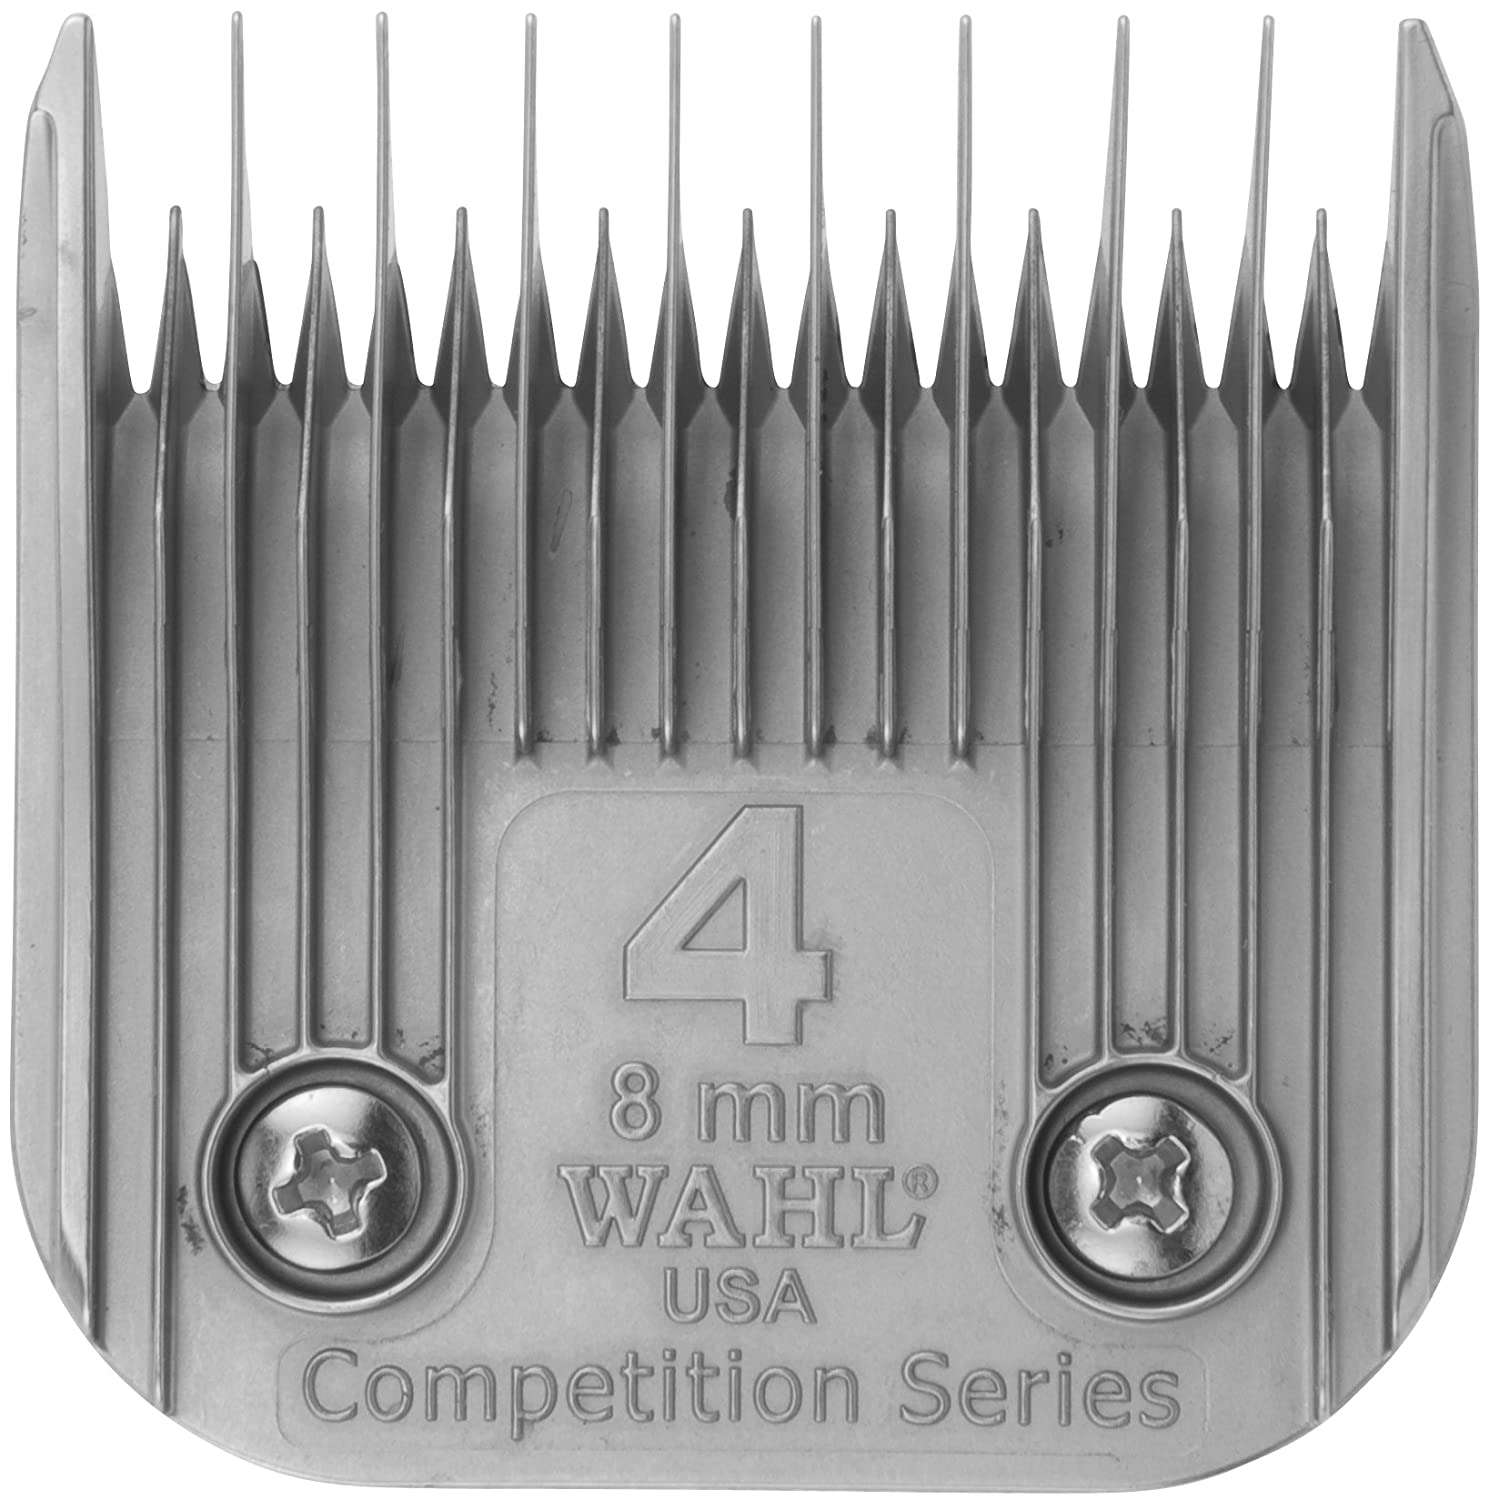 Wahl 2374-100 #4 Professional Skip Extra Coarse Competition Blade By Wahl Professional Animal фен wahl 4314 0470 turbobooster 3400 ergolight